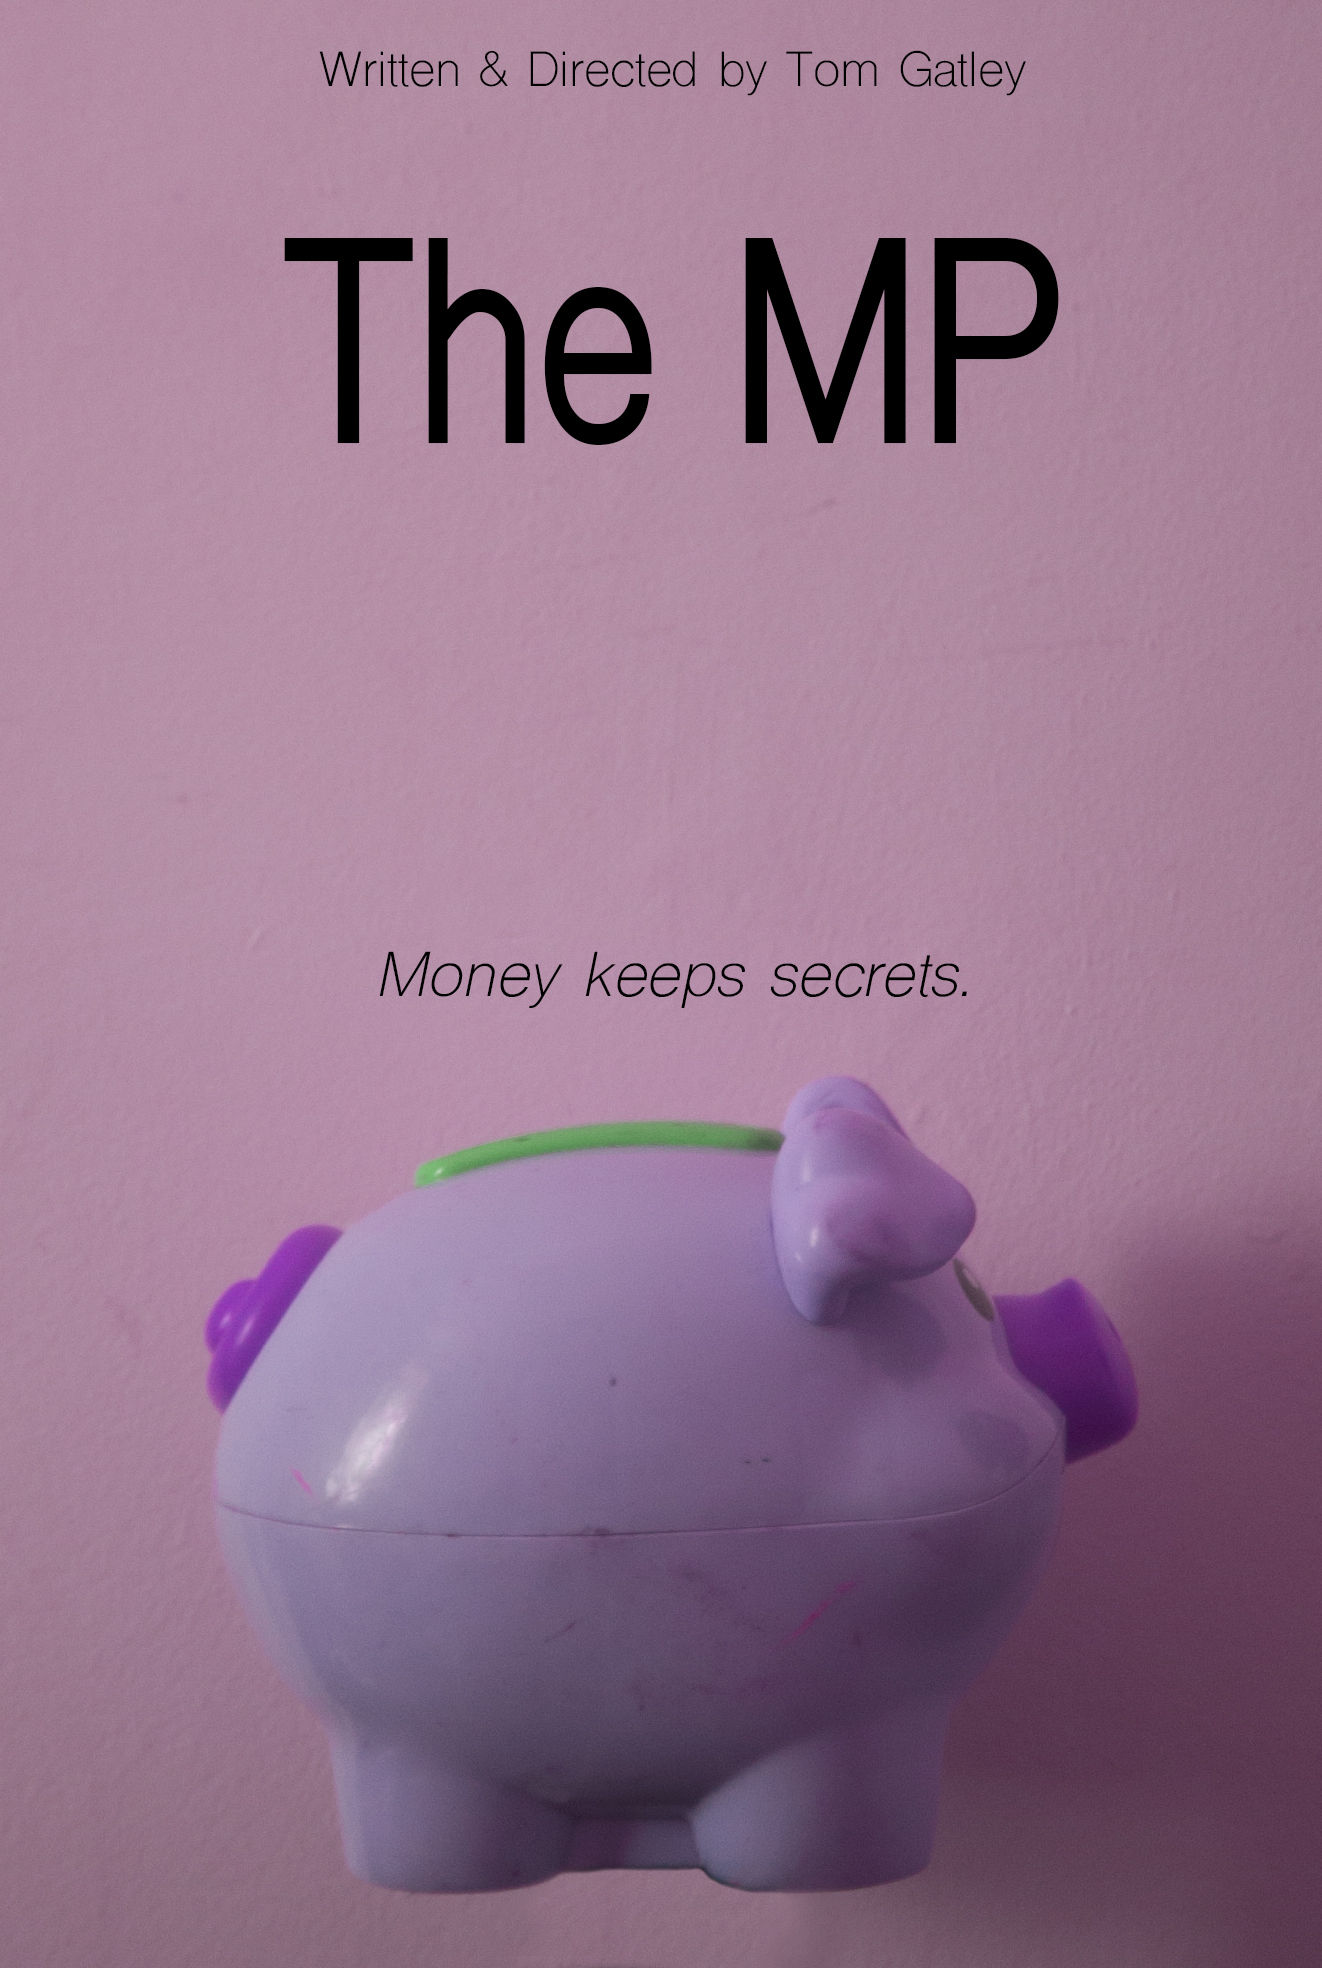 The MP